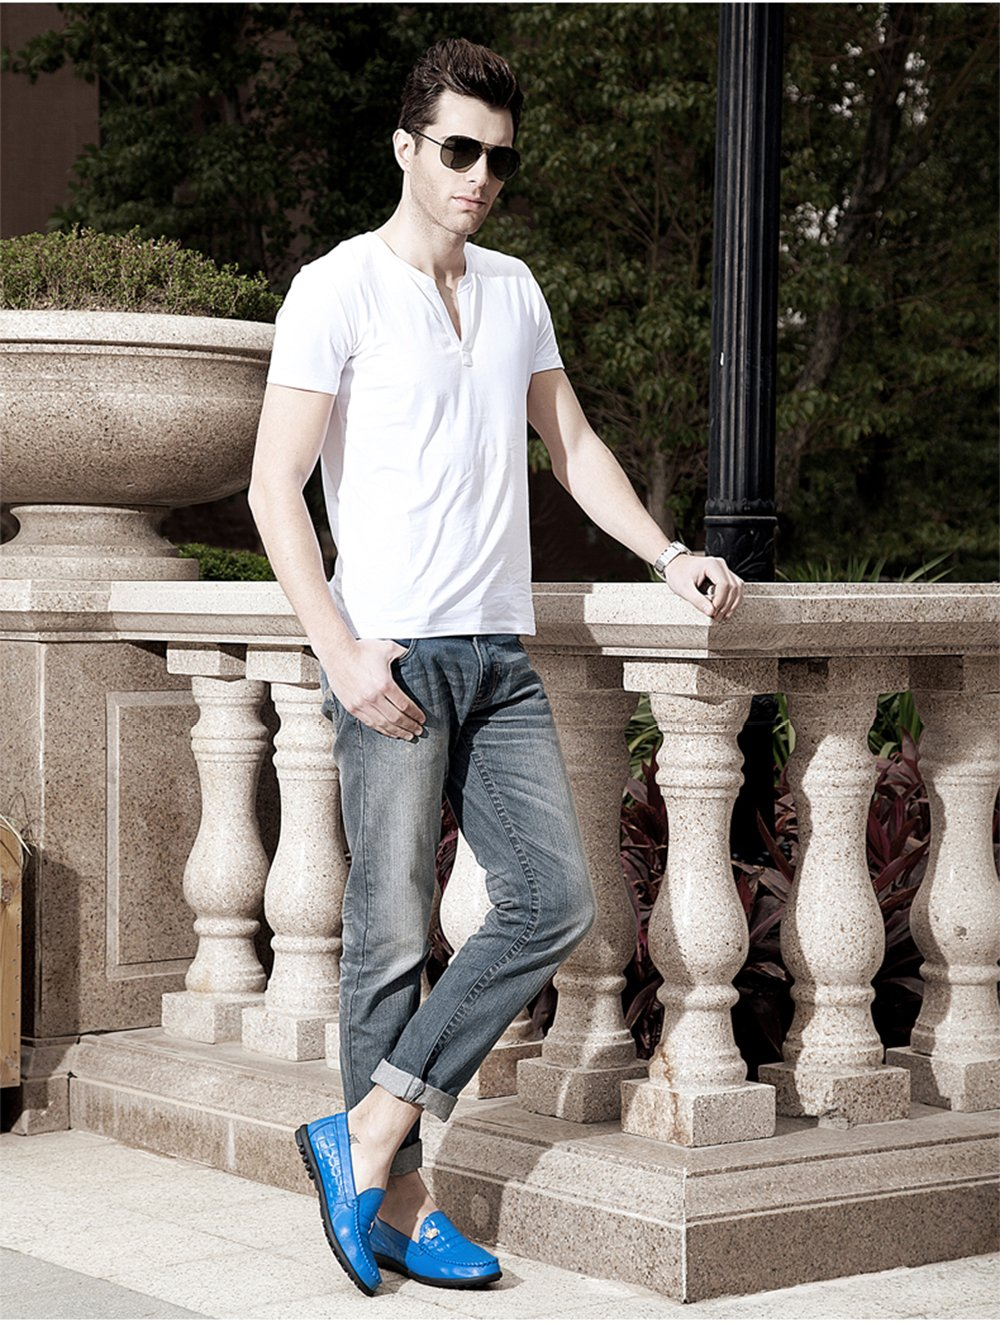 Men's Waterproof Slip-Ons - Perfect for Casual Walking and Outdoor Activities M01-42Be by HUMGFENG (Image #8)